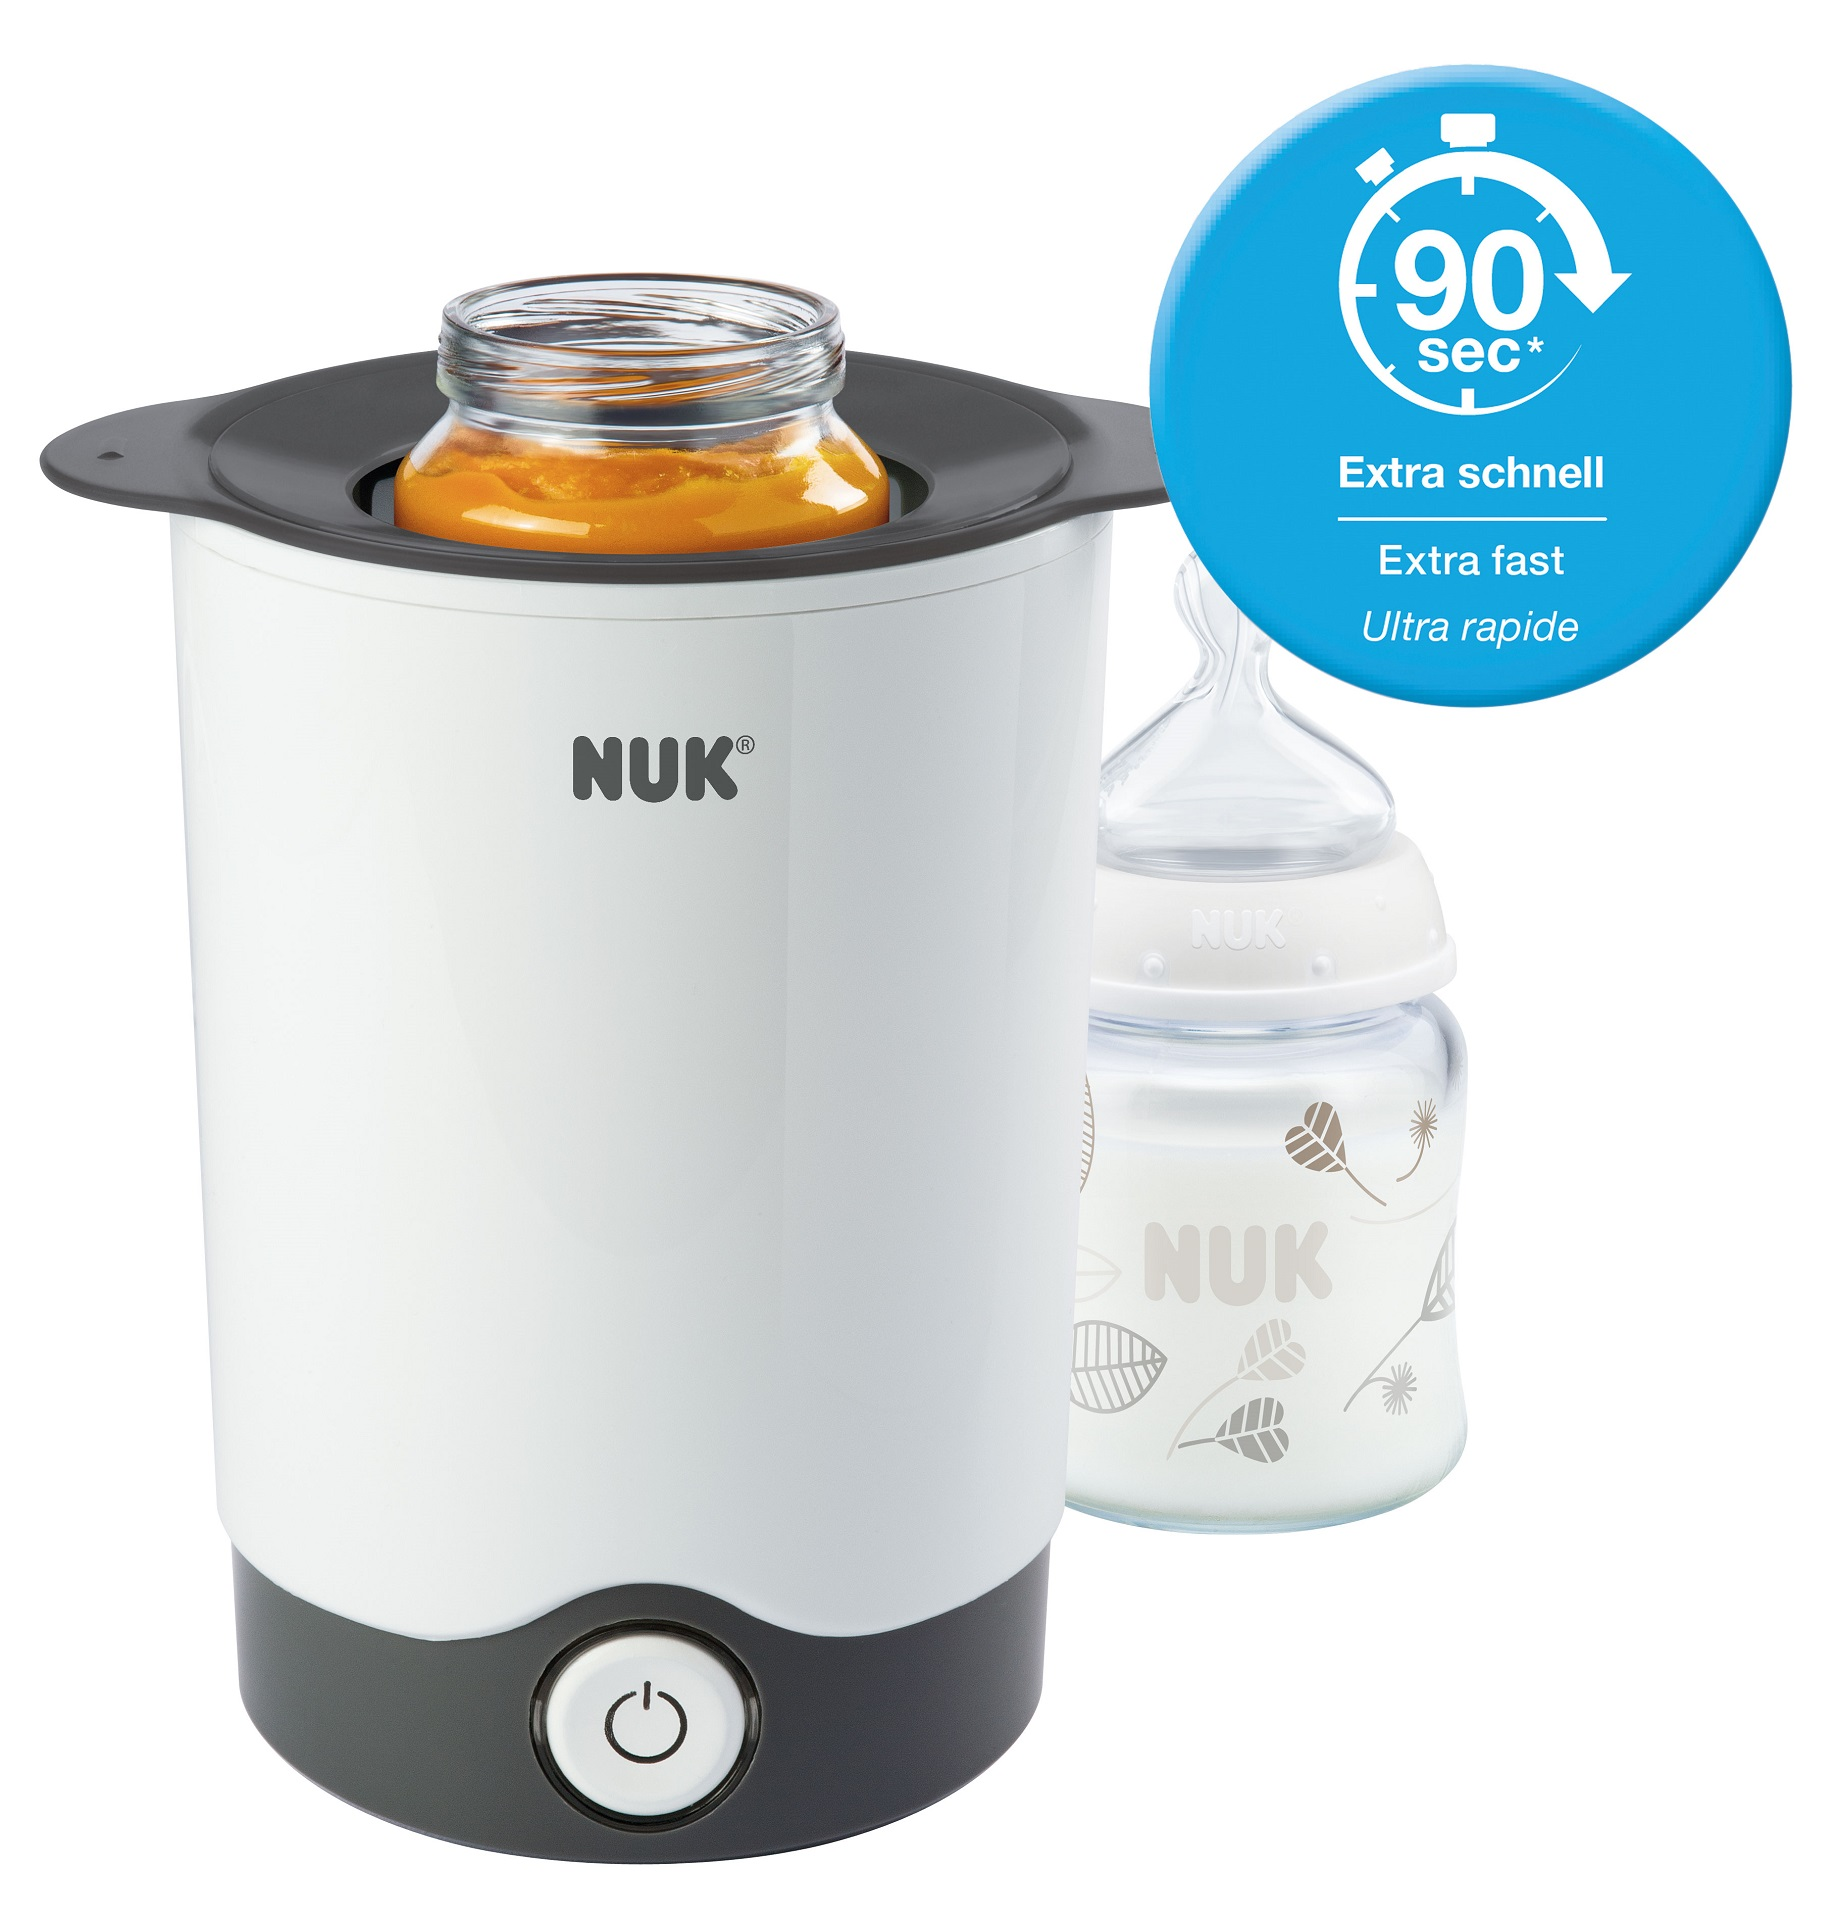 nuk thermo express bottle warmer instructions